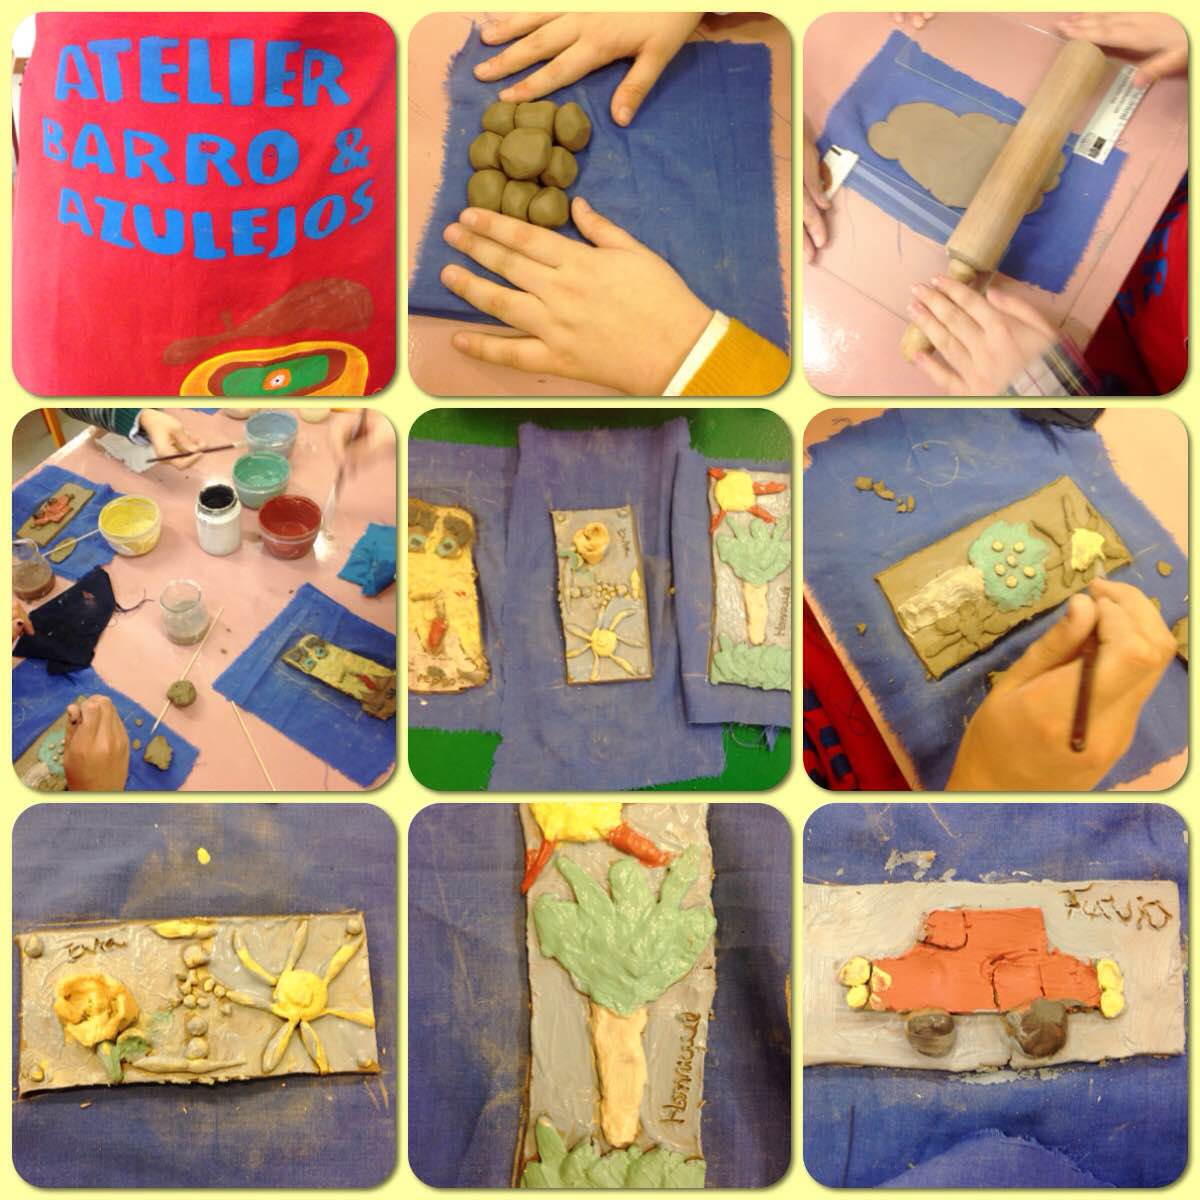 Mini Clube Kids - Atelier de Barro